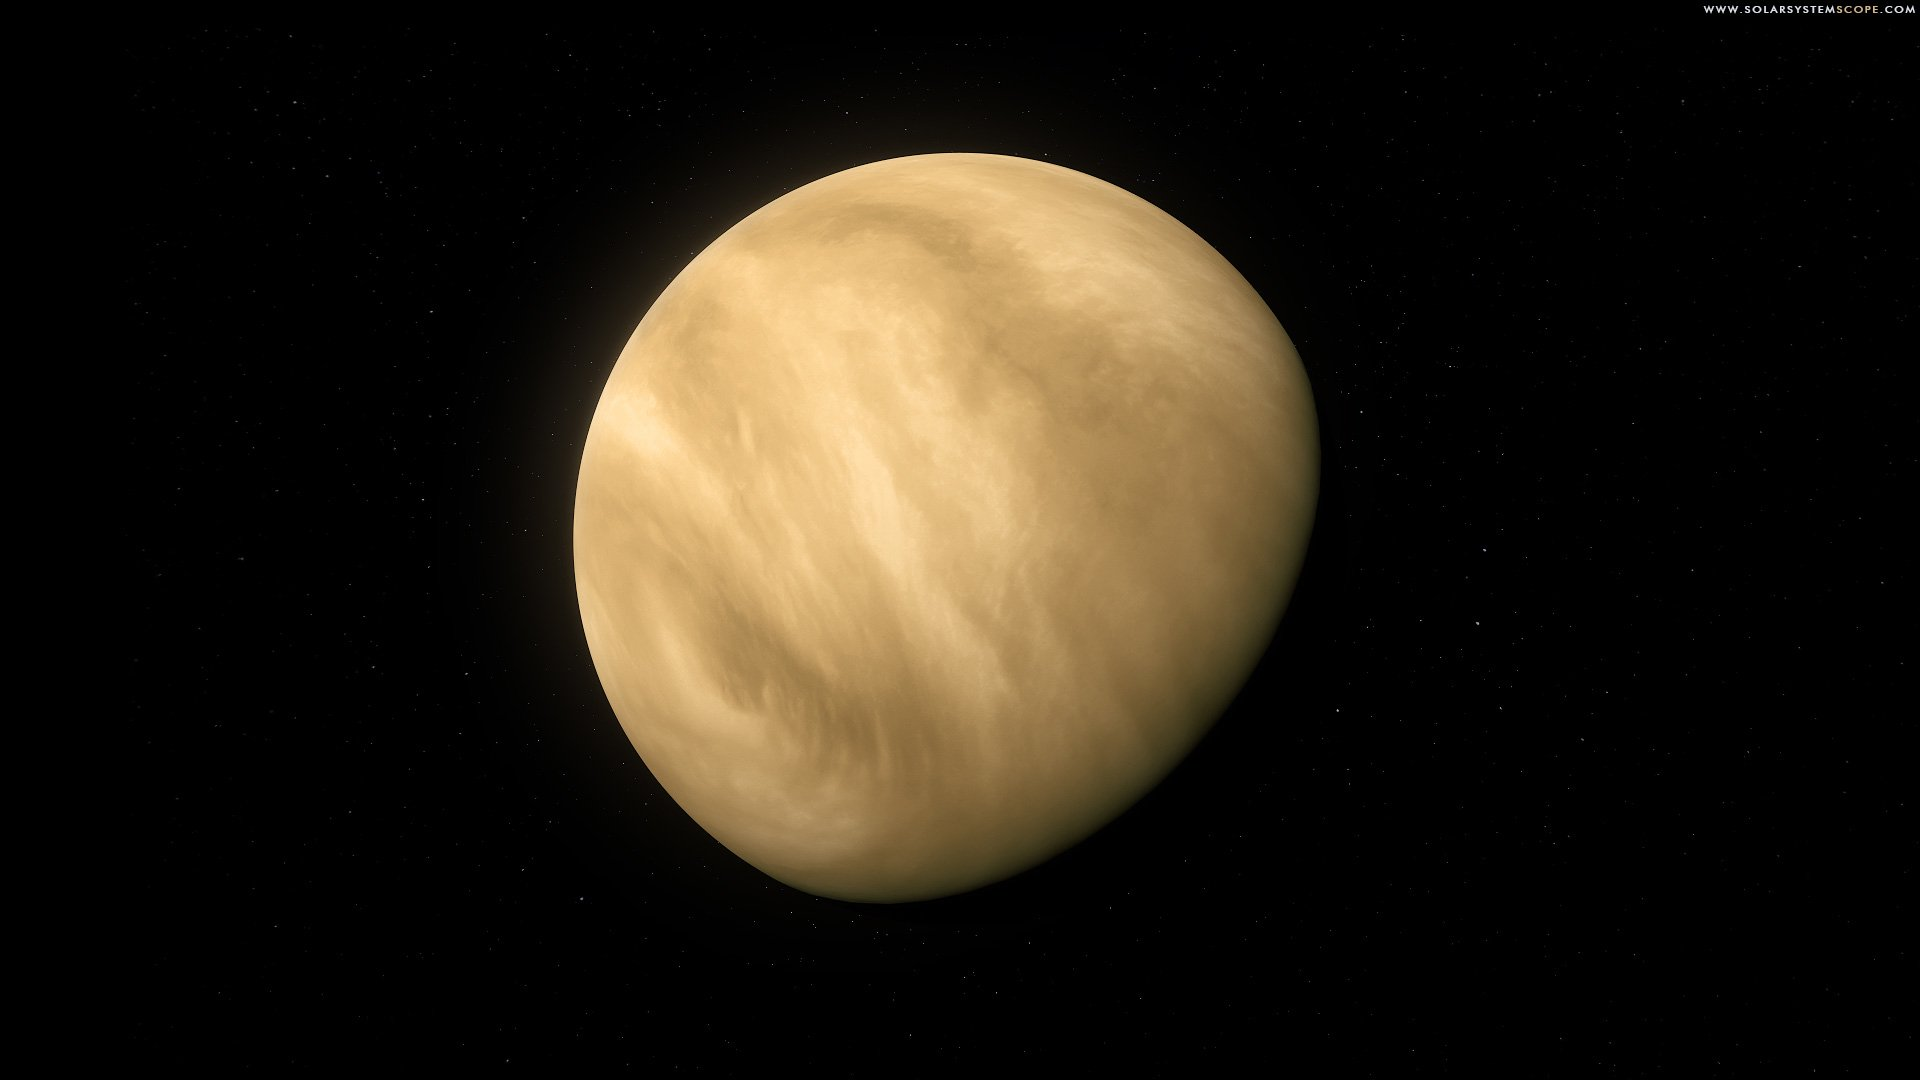 4 Venus HD Wallpapers Background Images 1920x1080